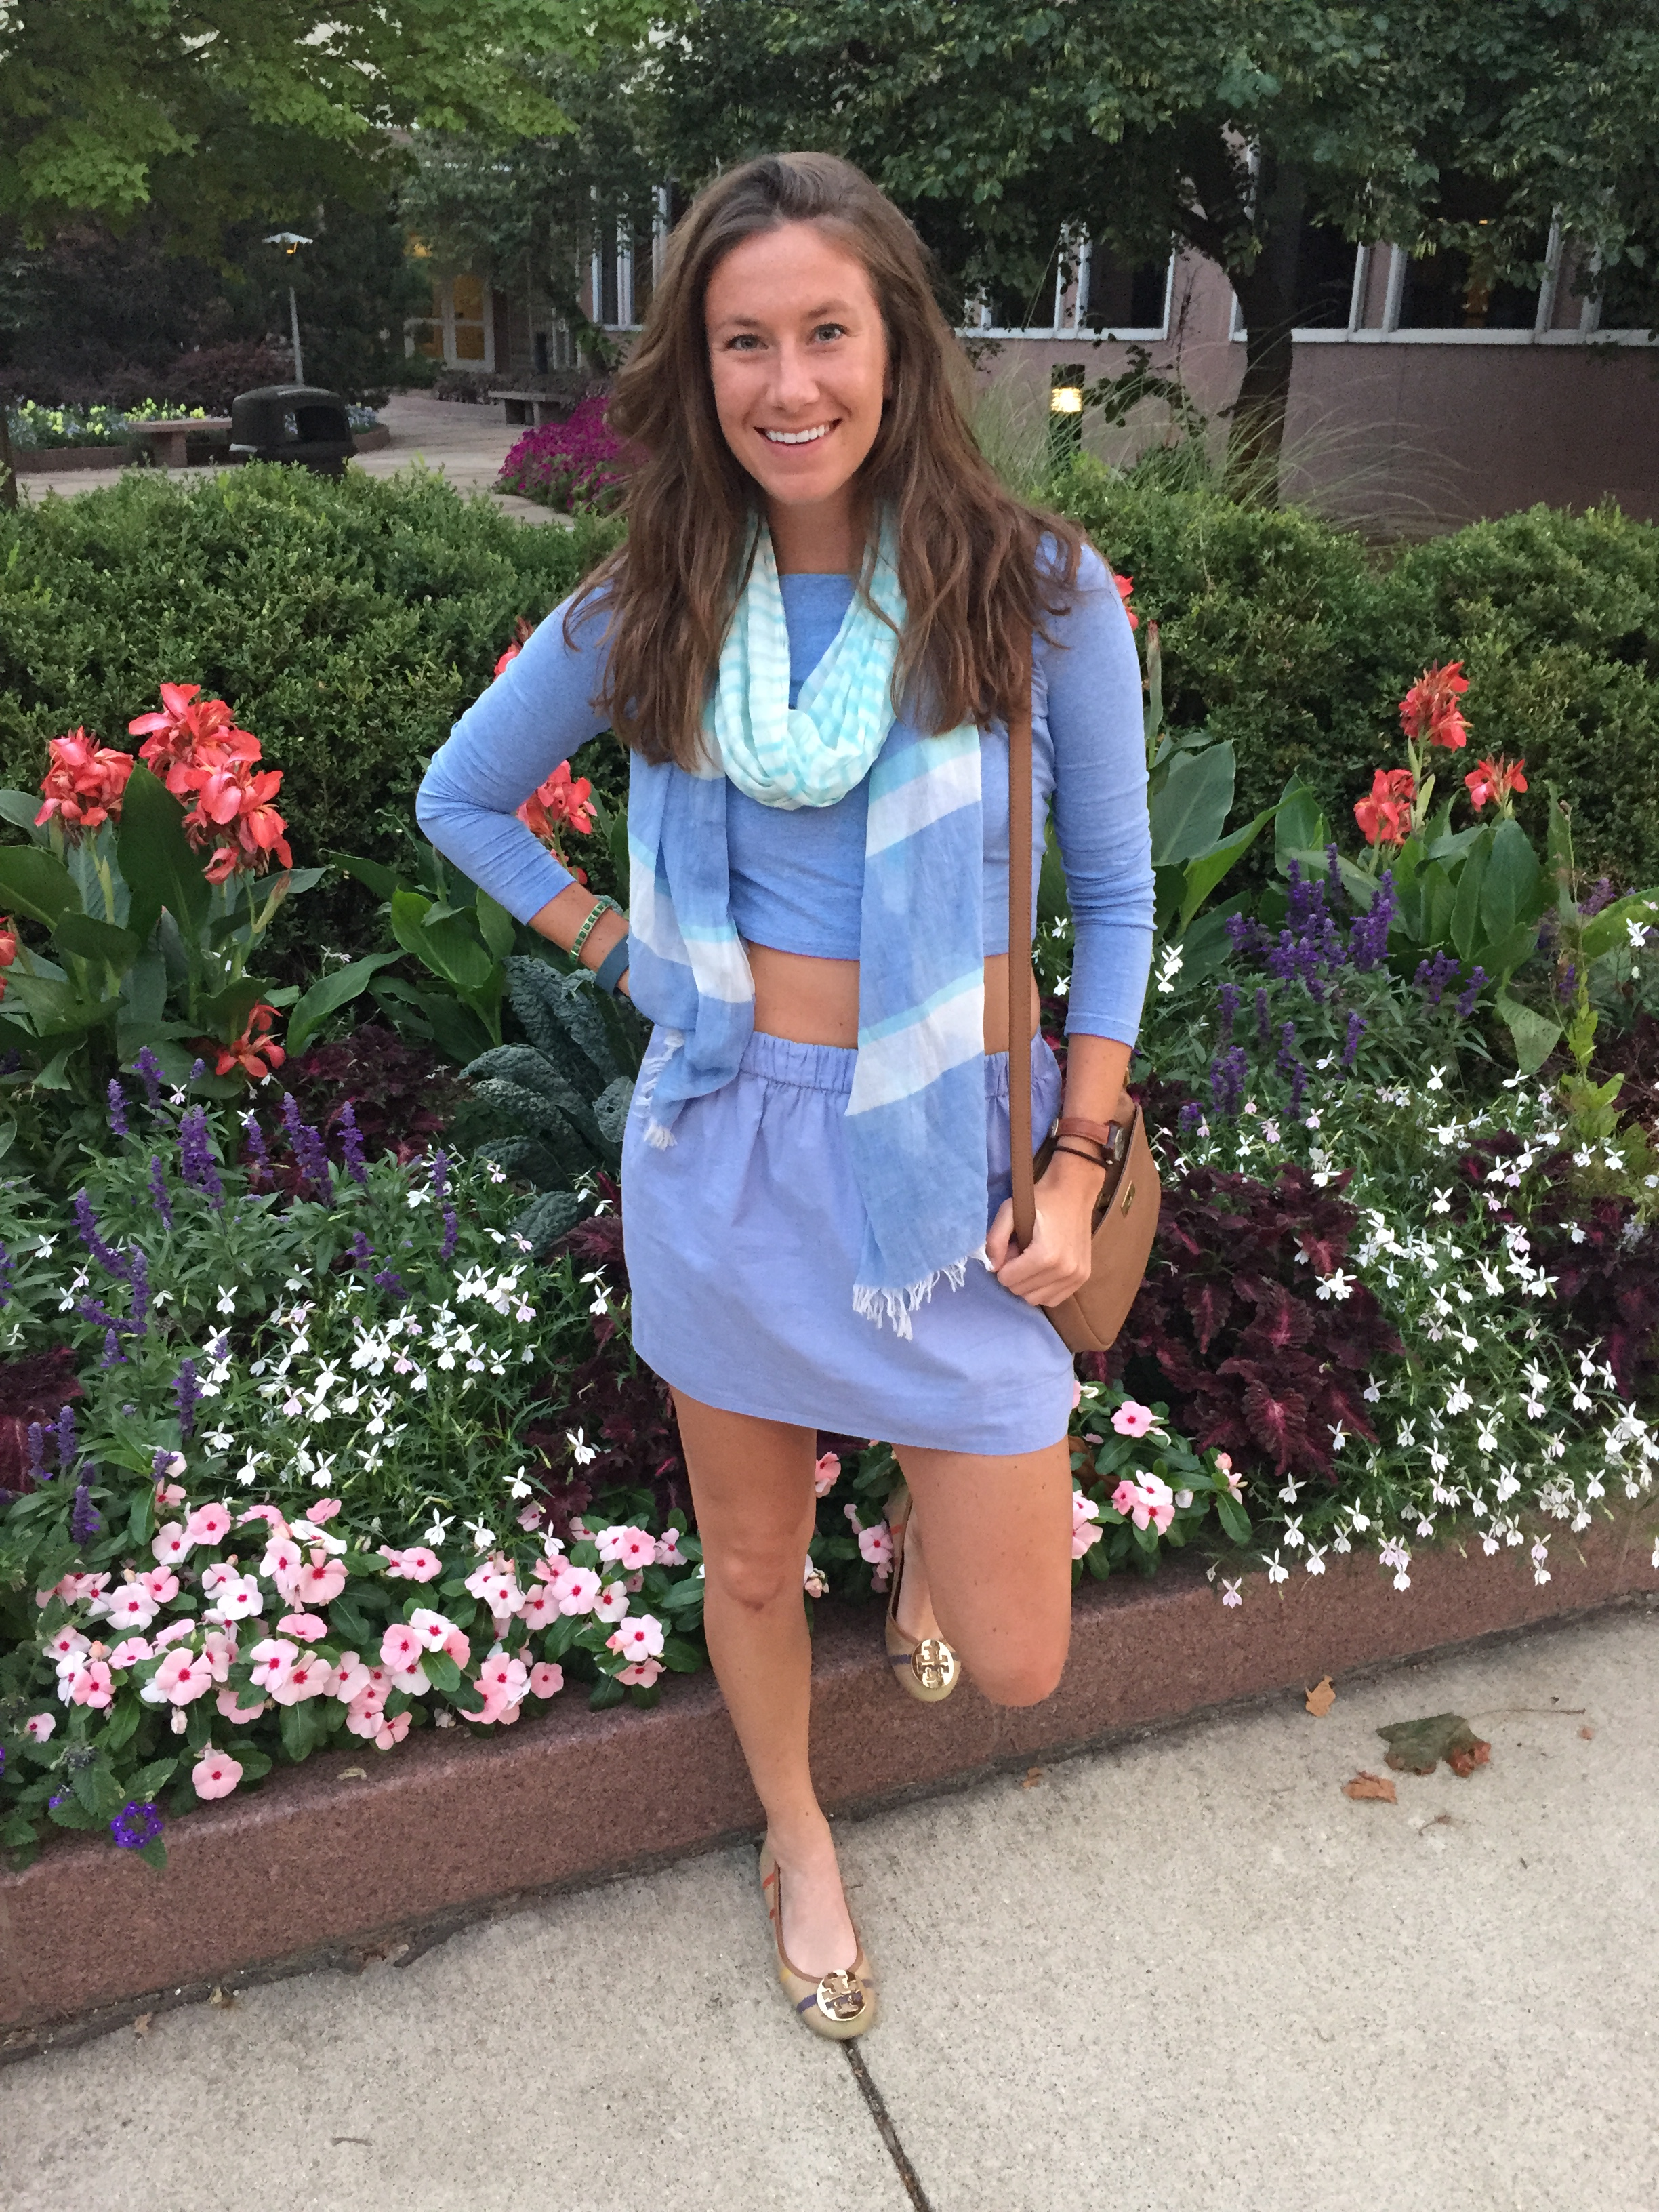 The outfit could be good for a breezy summer night. Shoes: Tory Burch, similar  here . Skirt: J.Crew, similar  here  at J.Crew Factory. Top: H&M, similar  here . Scarf: American Eagle, similar  here . Purse: J.Crew Factory, similar  here .